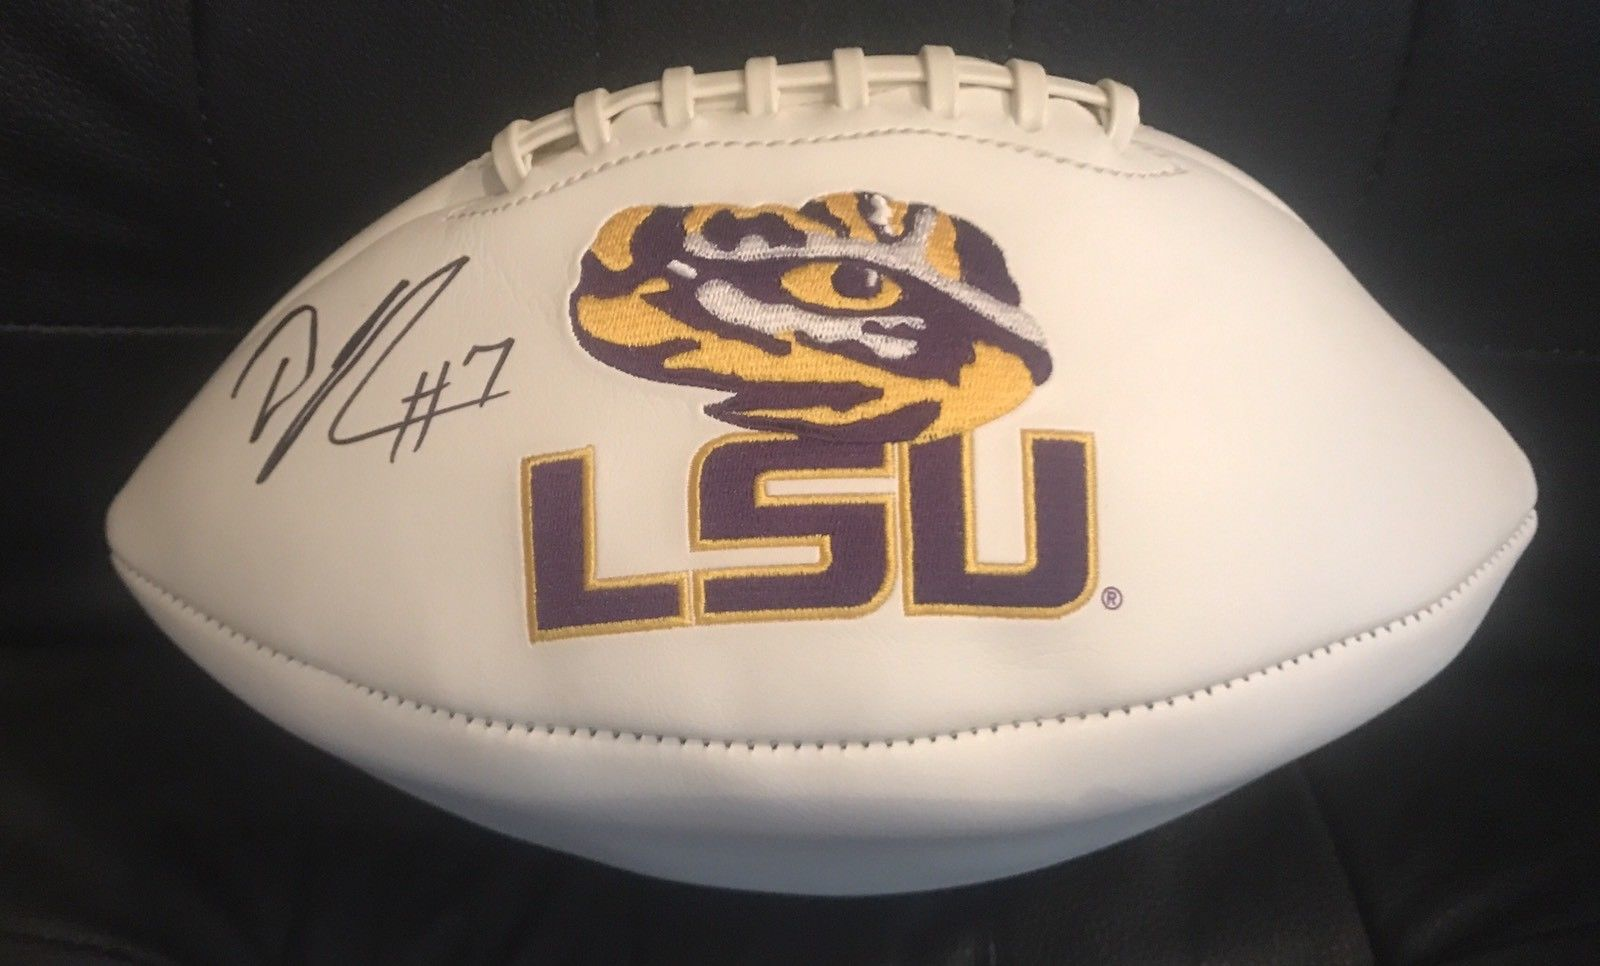 DJ Chark Authentic Signed LSU Logo Football - Jacksonville Jaguars - Top Notch Signatures LLC